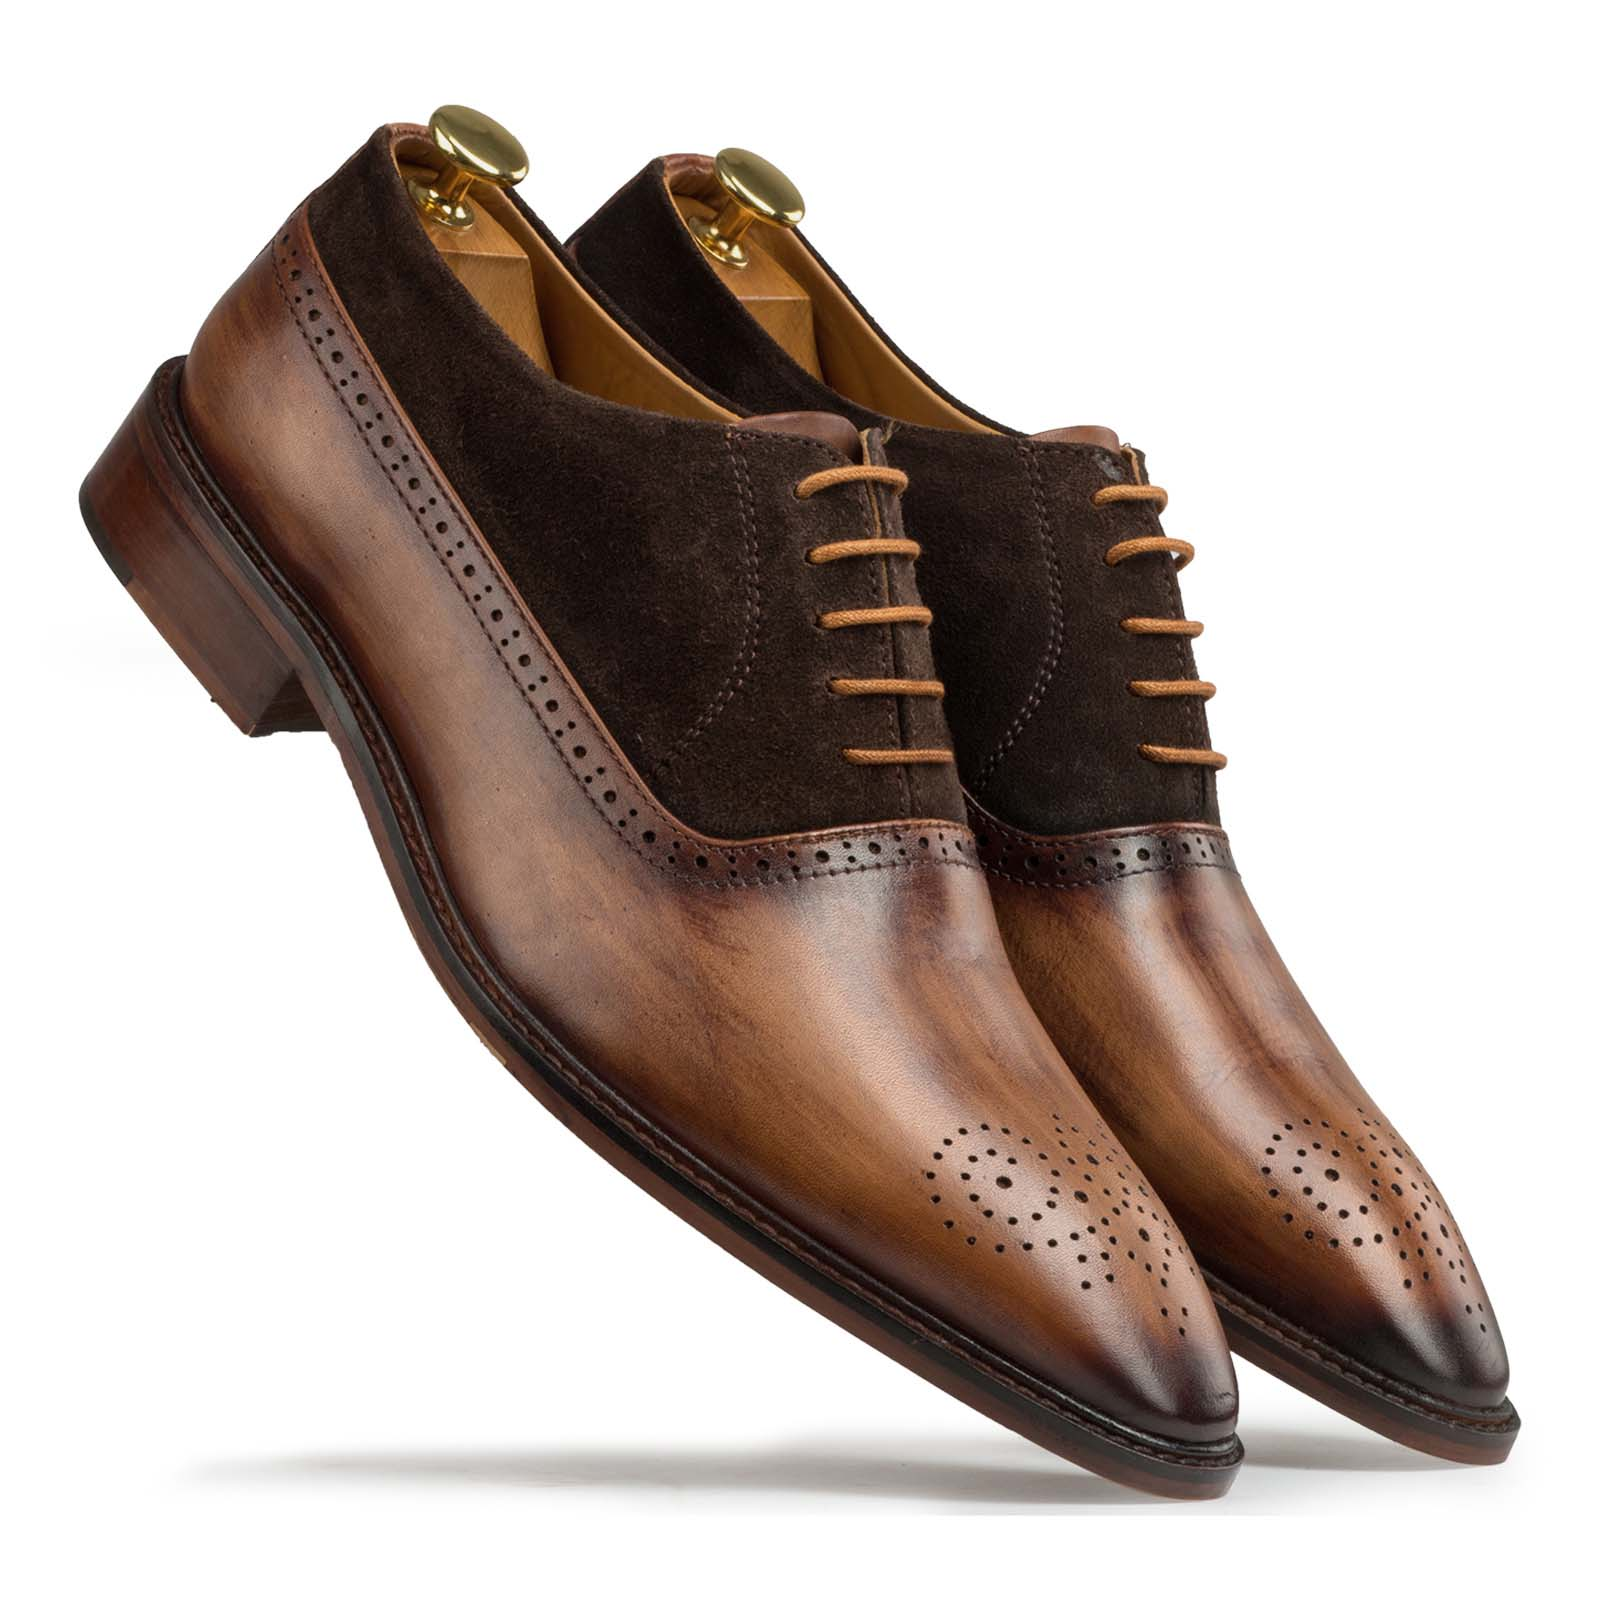 Brown-Tan Medallion suede oxfords